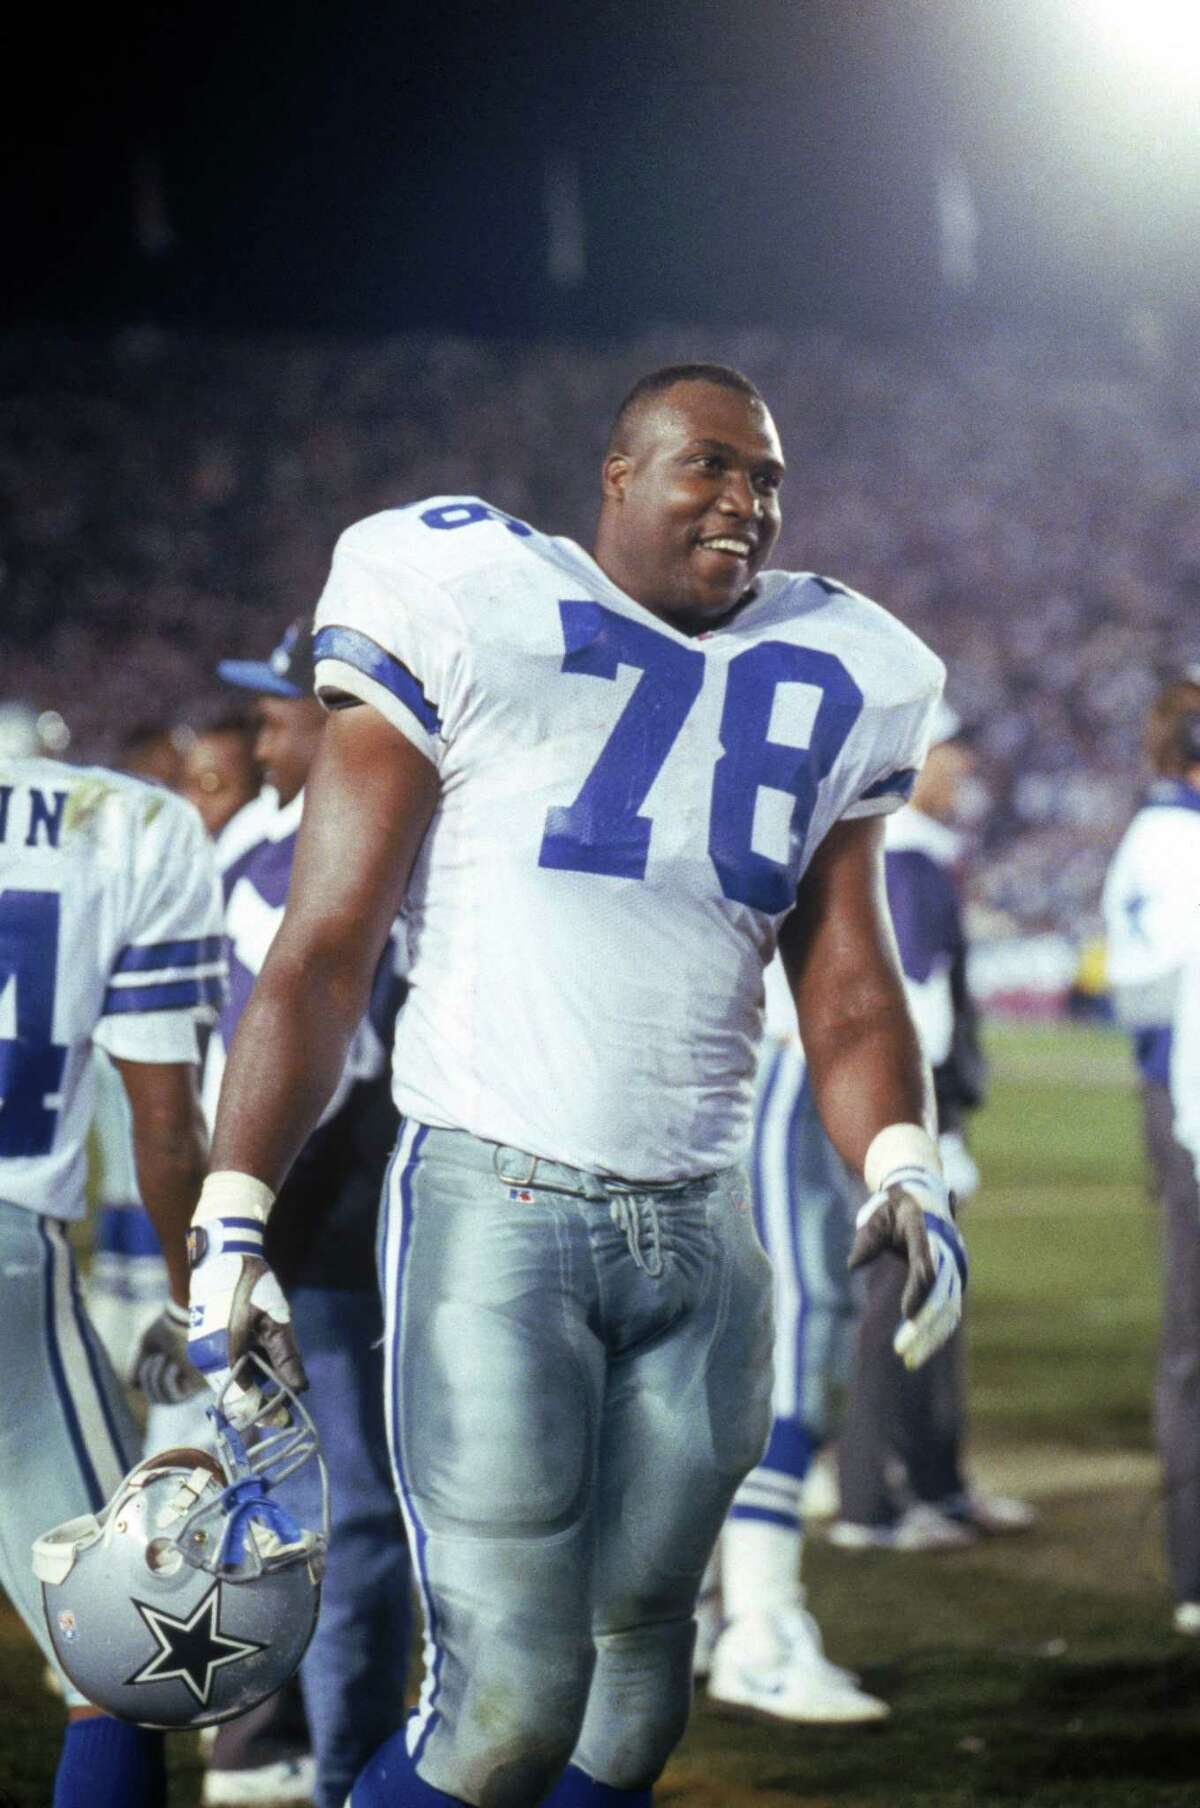 PASADENA, CA - JANUARY 31: Defensive end Leon Lett #78 of the Dallas Cowboys breaks a smiles as he stands on the sidelines during Super Bowl XXVII against the Buffalo Bills at the Rose Bowl on January 31, 1993 in Pasadena, California. The Cowboys won 52-17. (Photo by George Rose/Getty Images)